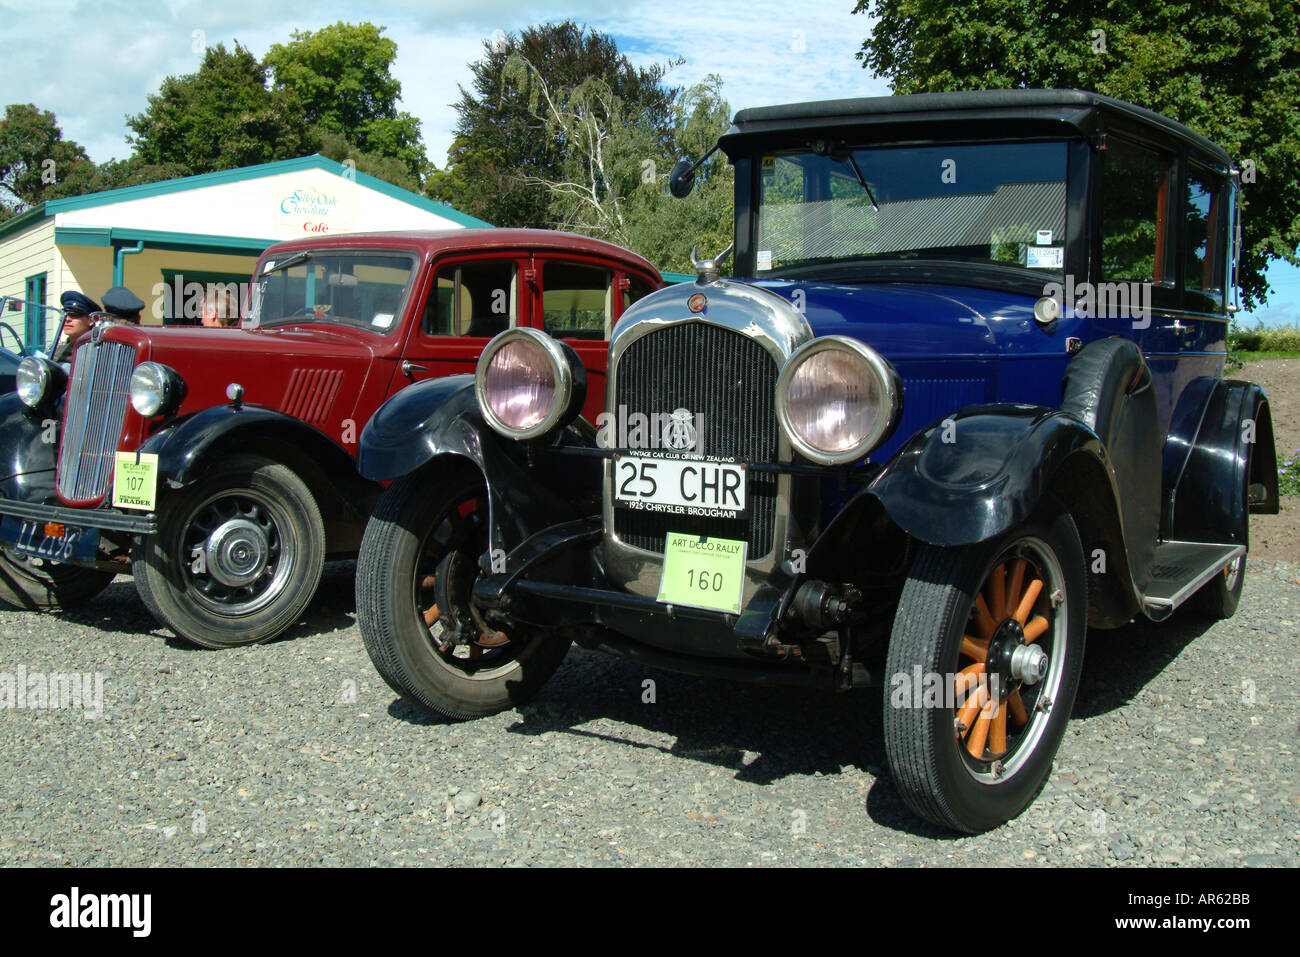 Vintage car classic cars Hawkes bay rally New Zealand - Stock Image